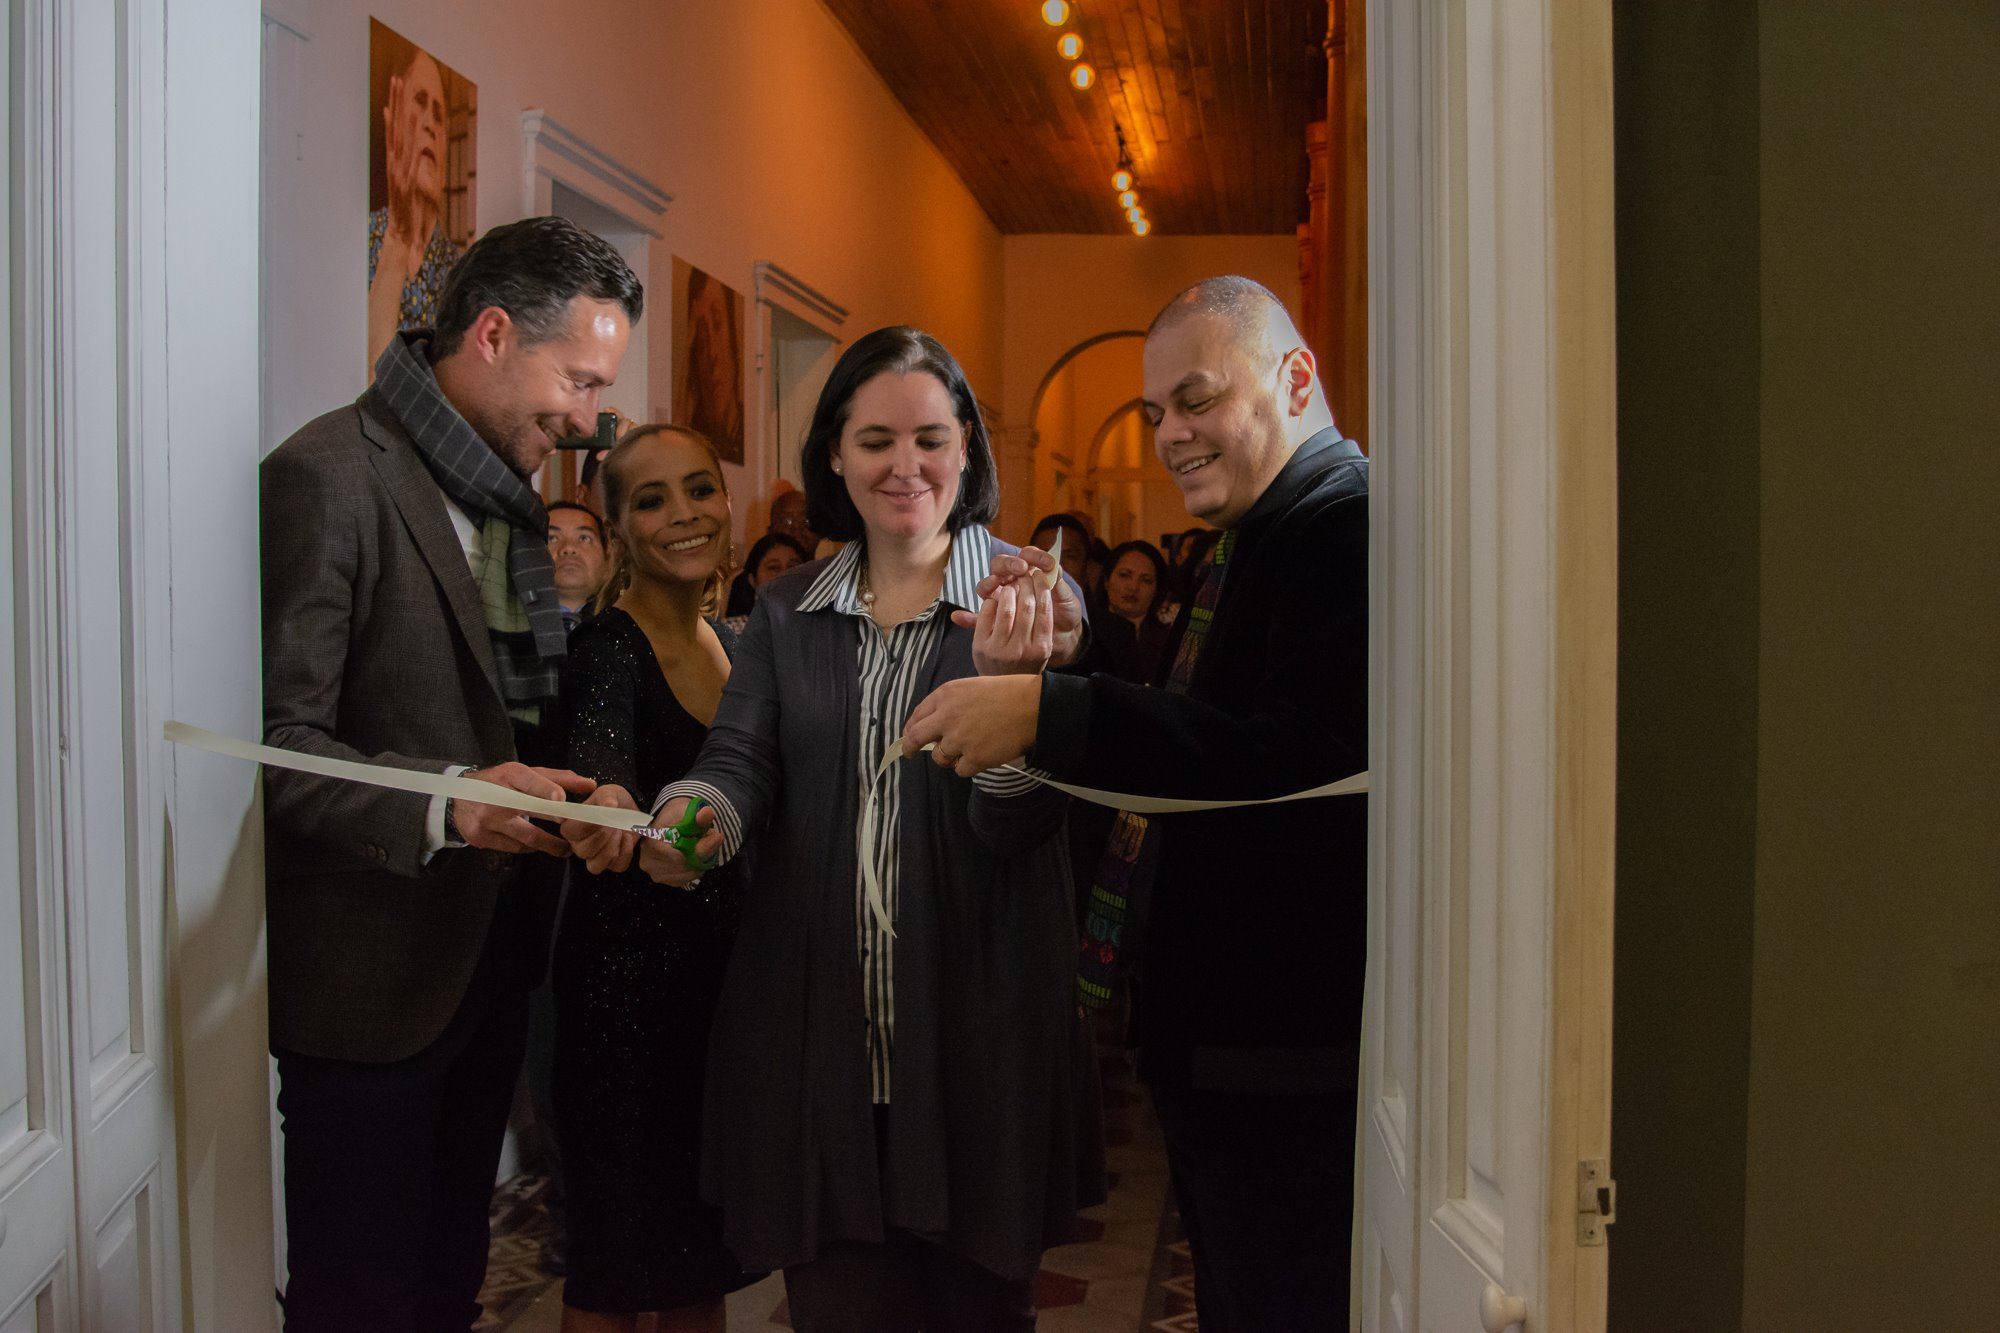 """Marco and guests at the opening of the """"Mi Nombre Es"""" exhibit at the Museo del Holocausto Guatemala"""